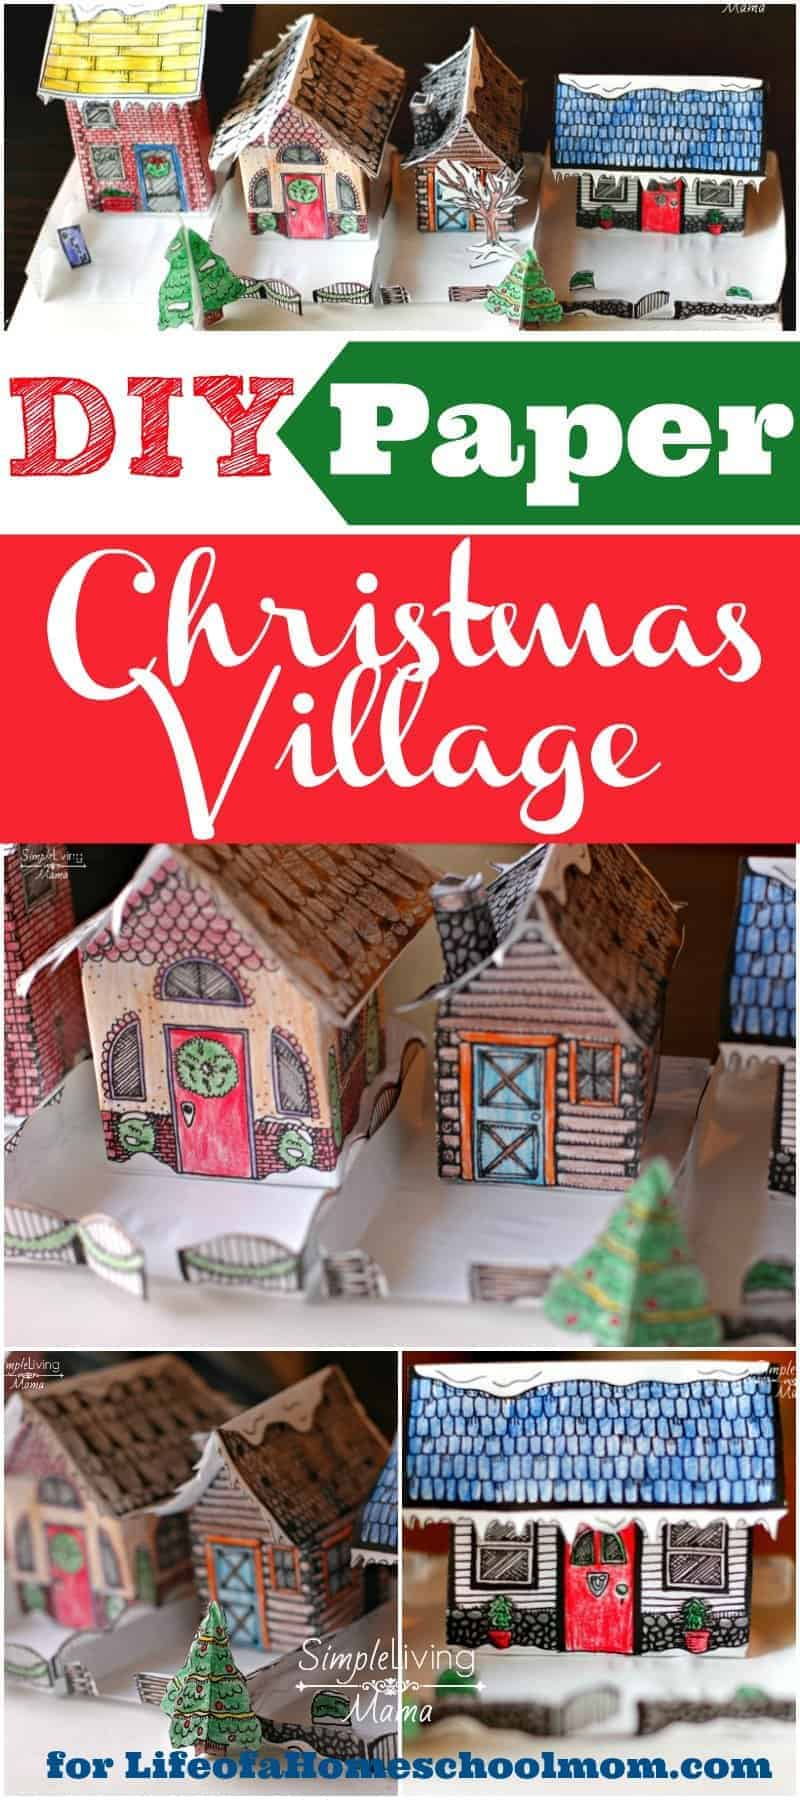 A DIY paper Christmas village craft that you can create with your kids. This is an incredible craft for expressing creativity and making memories!